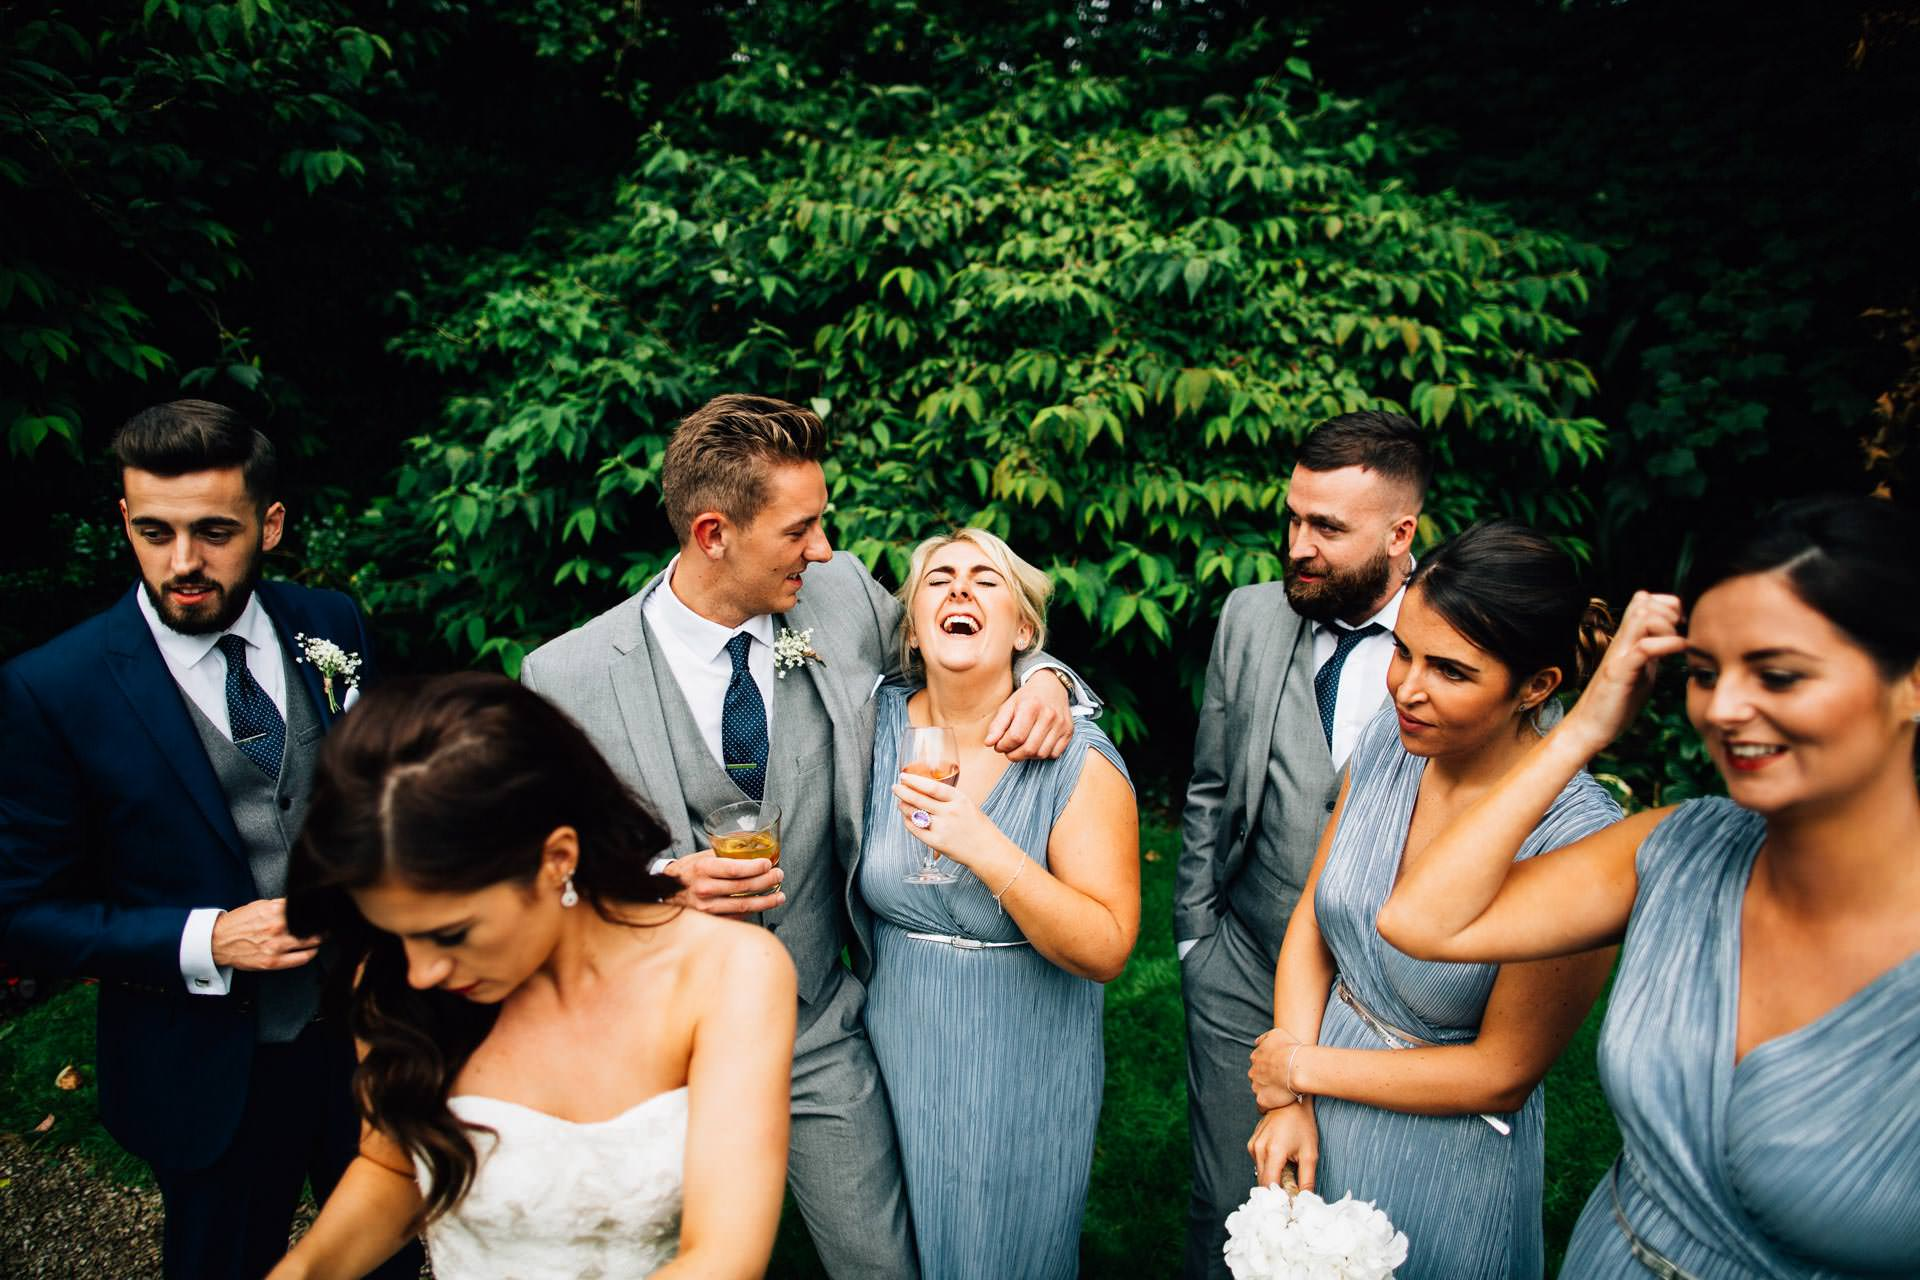 Best wedding photography 2016 - bridesmaids drunk and laughing